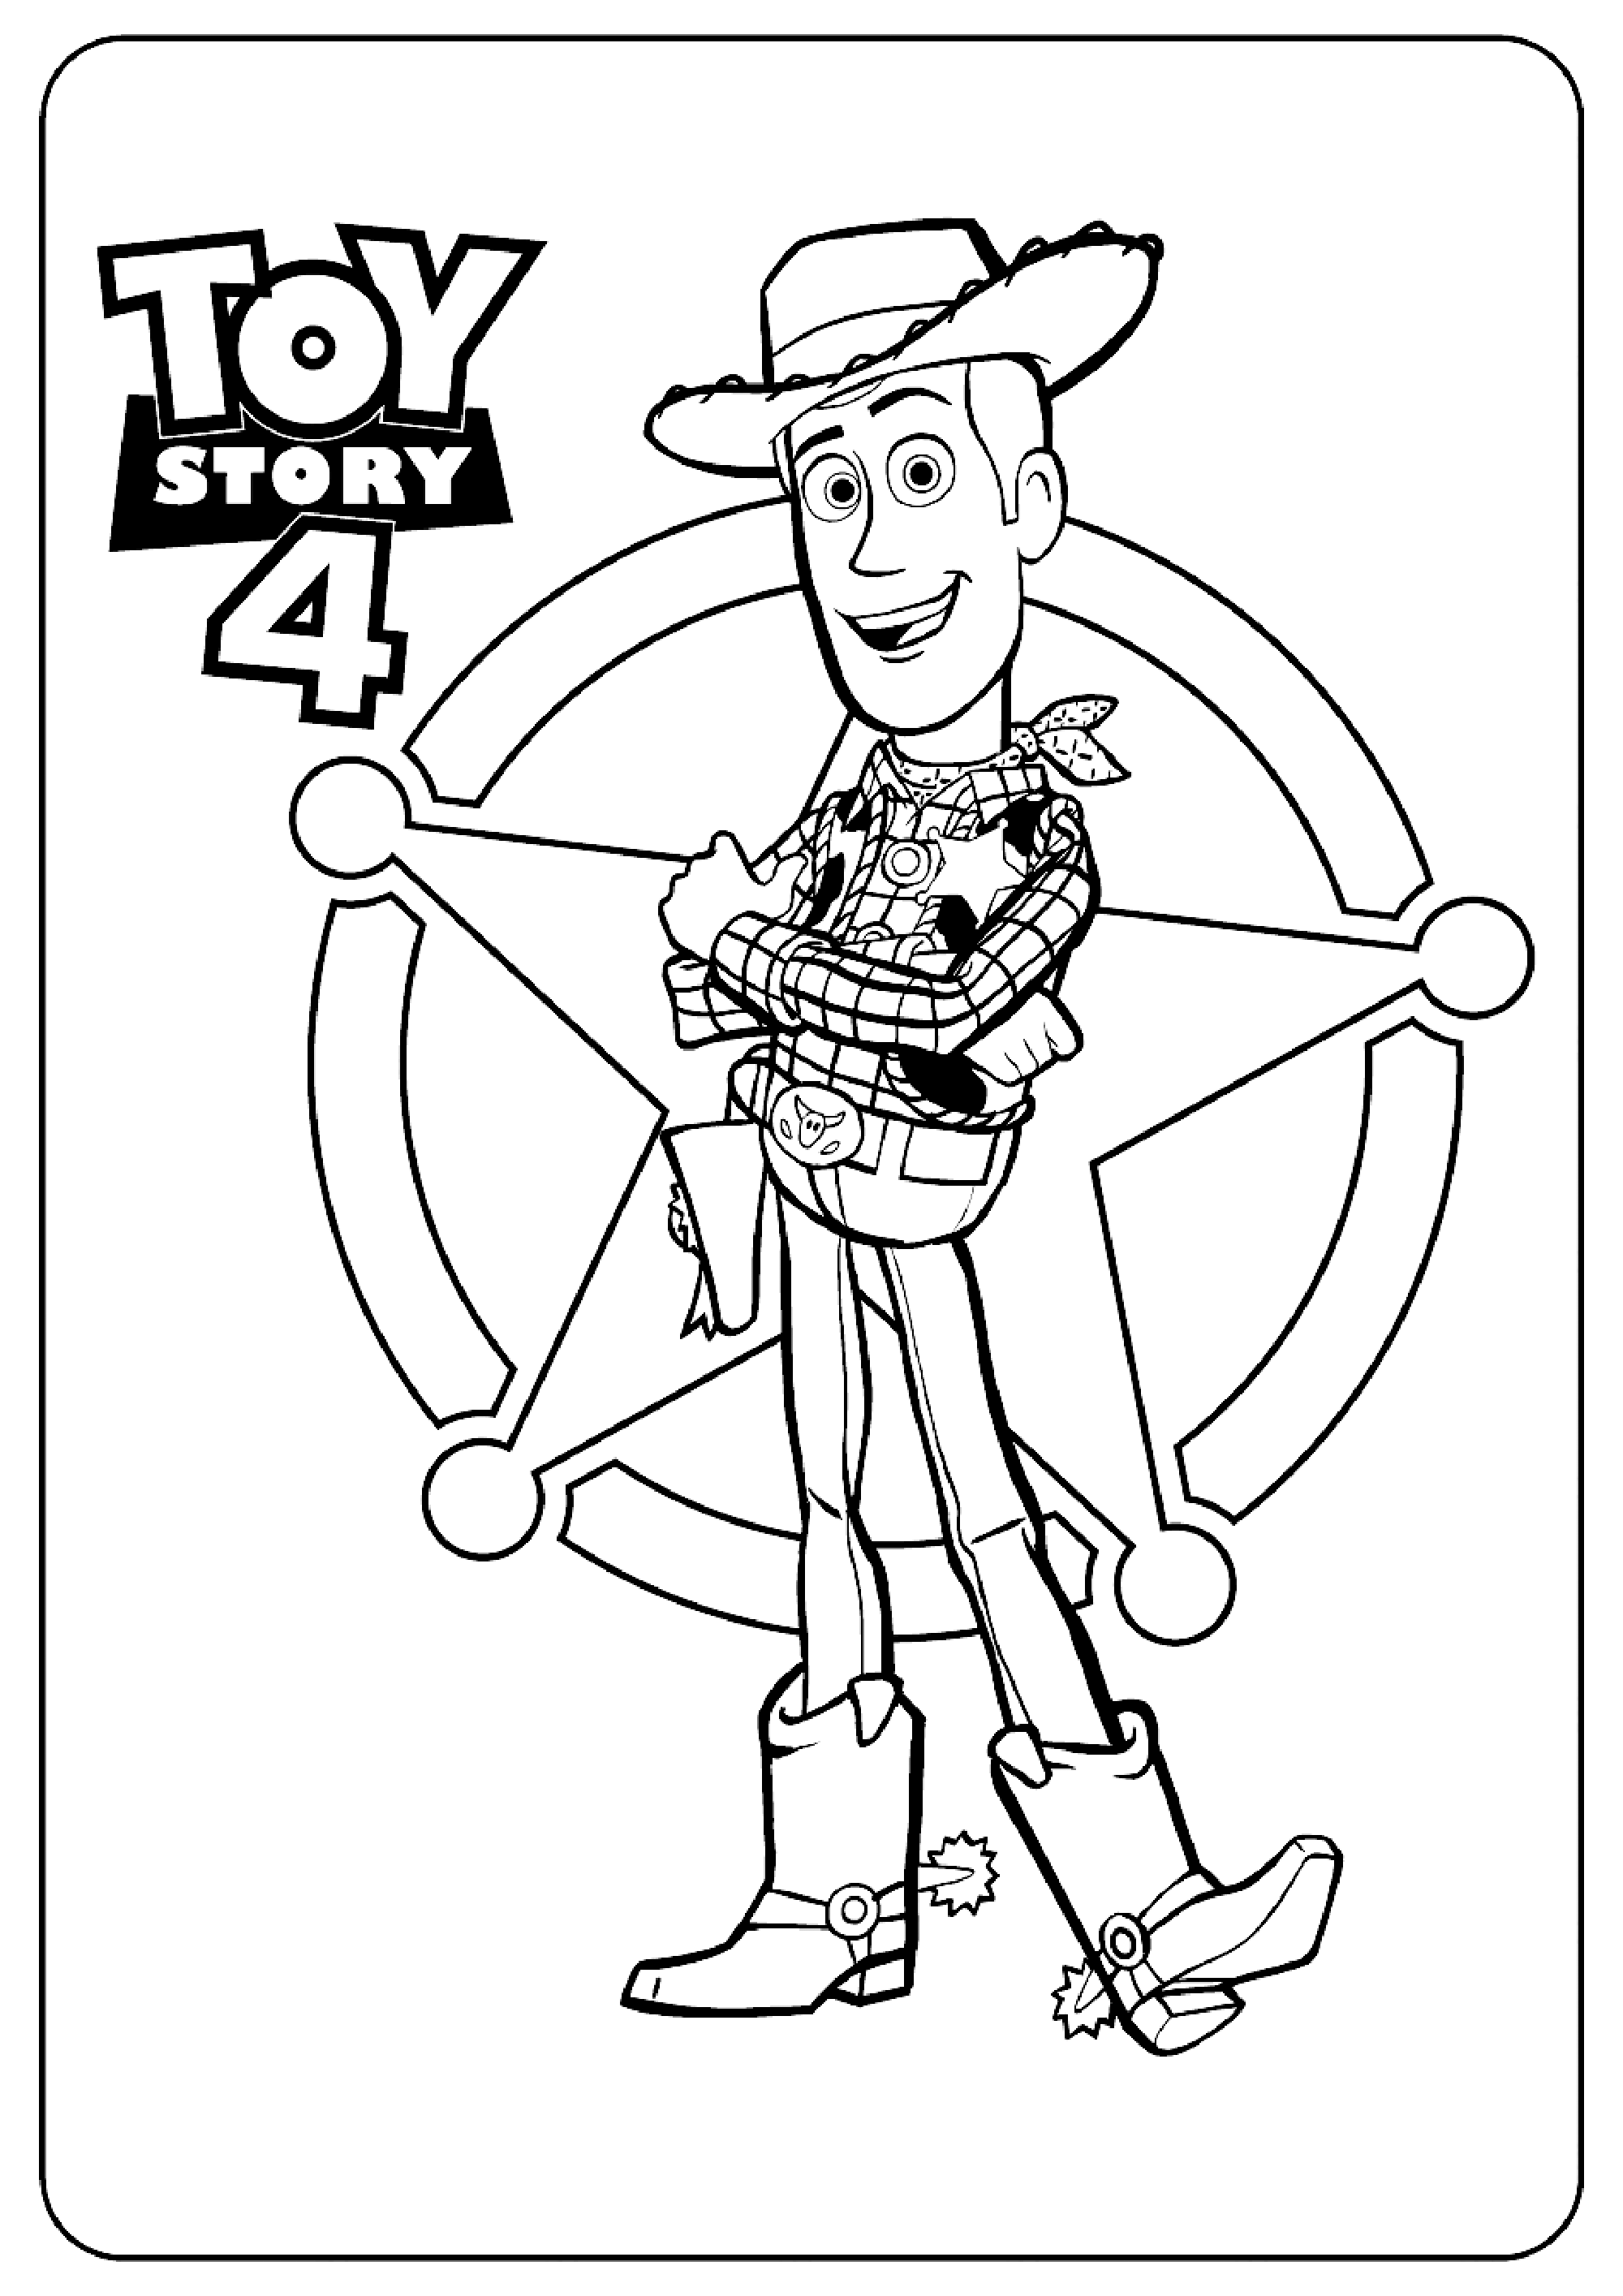 Sheriff Woody Toy Story 4 Coloring Pages